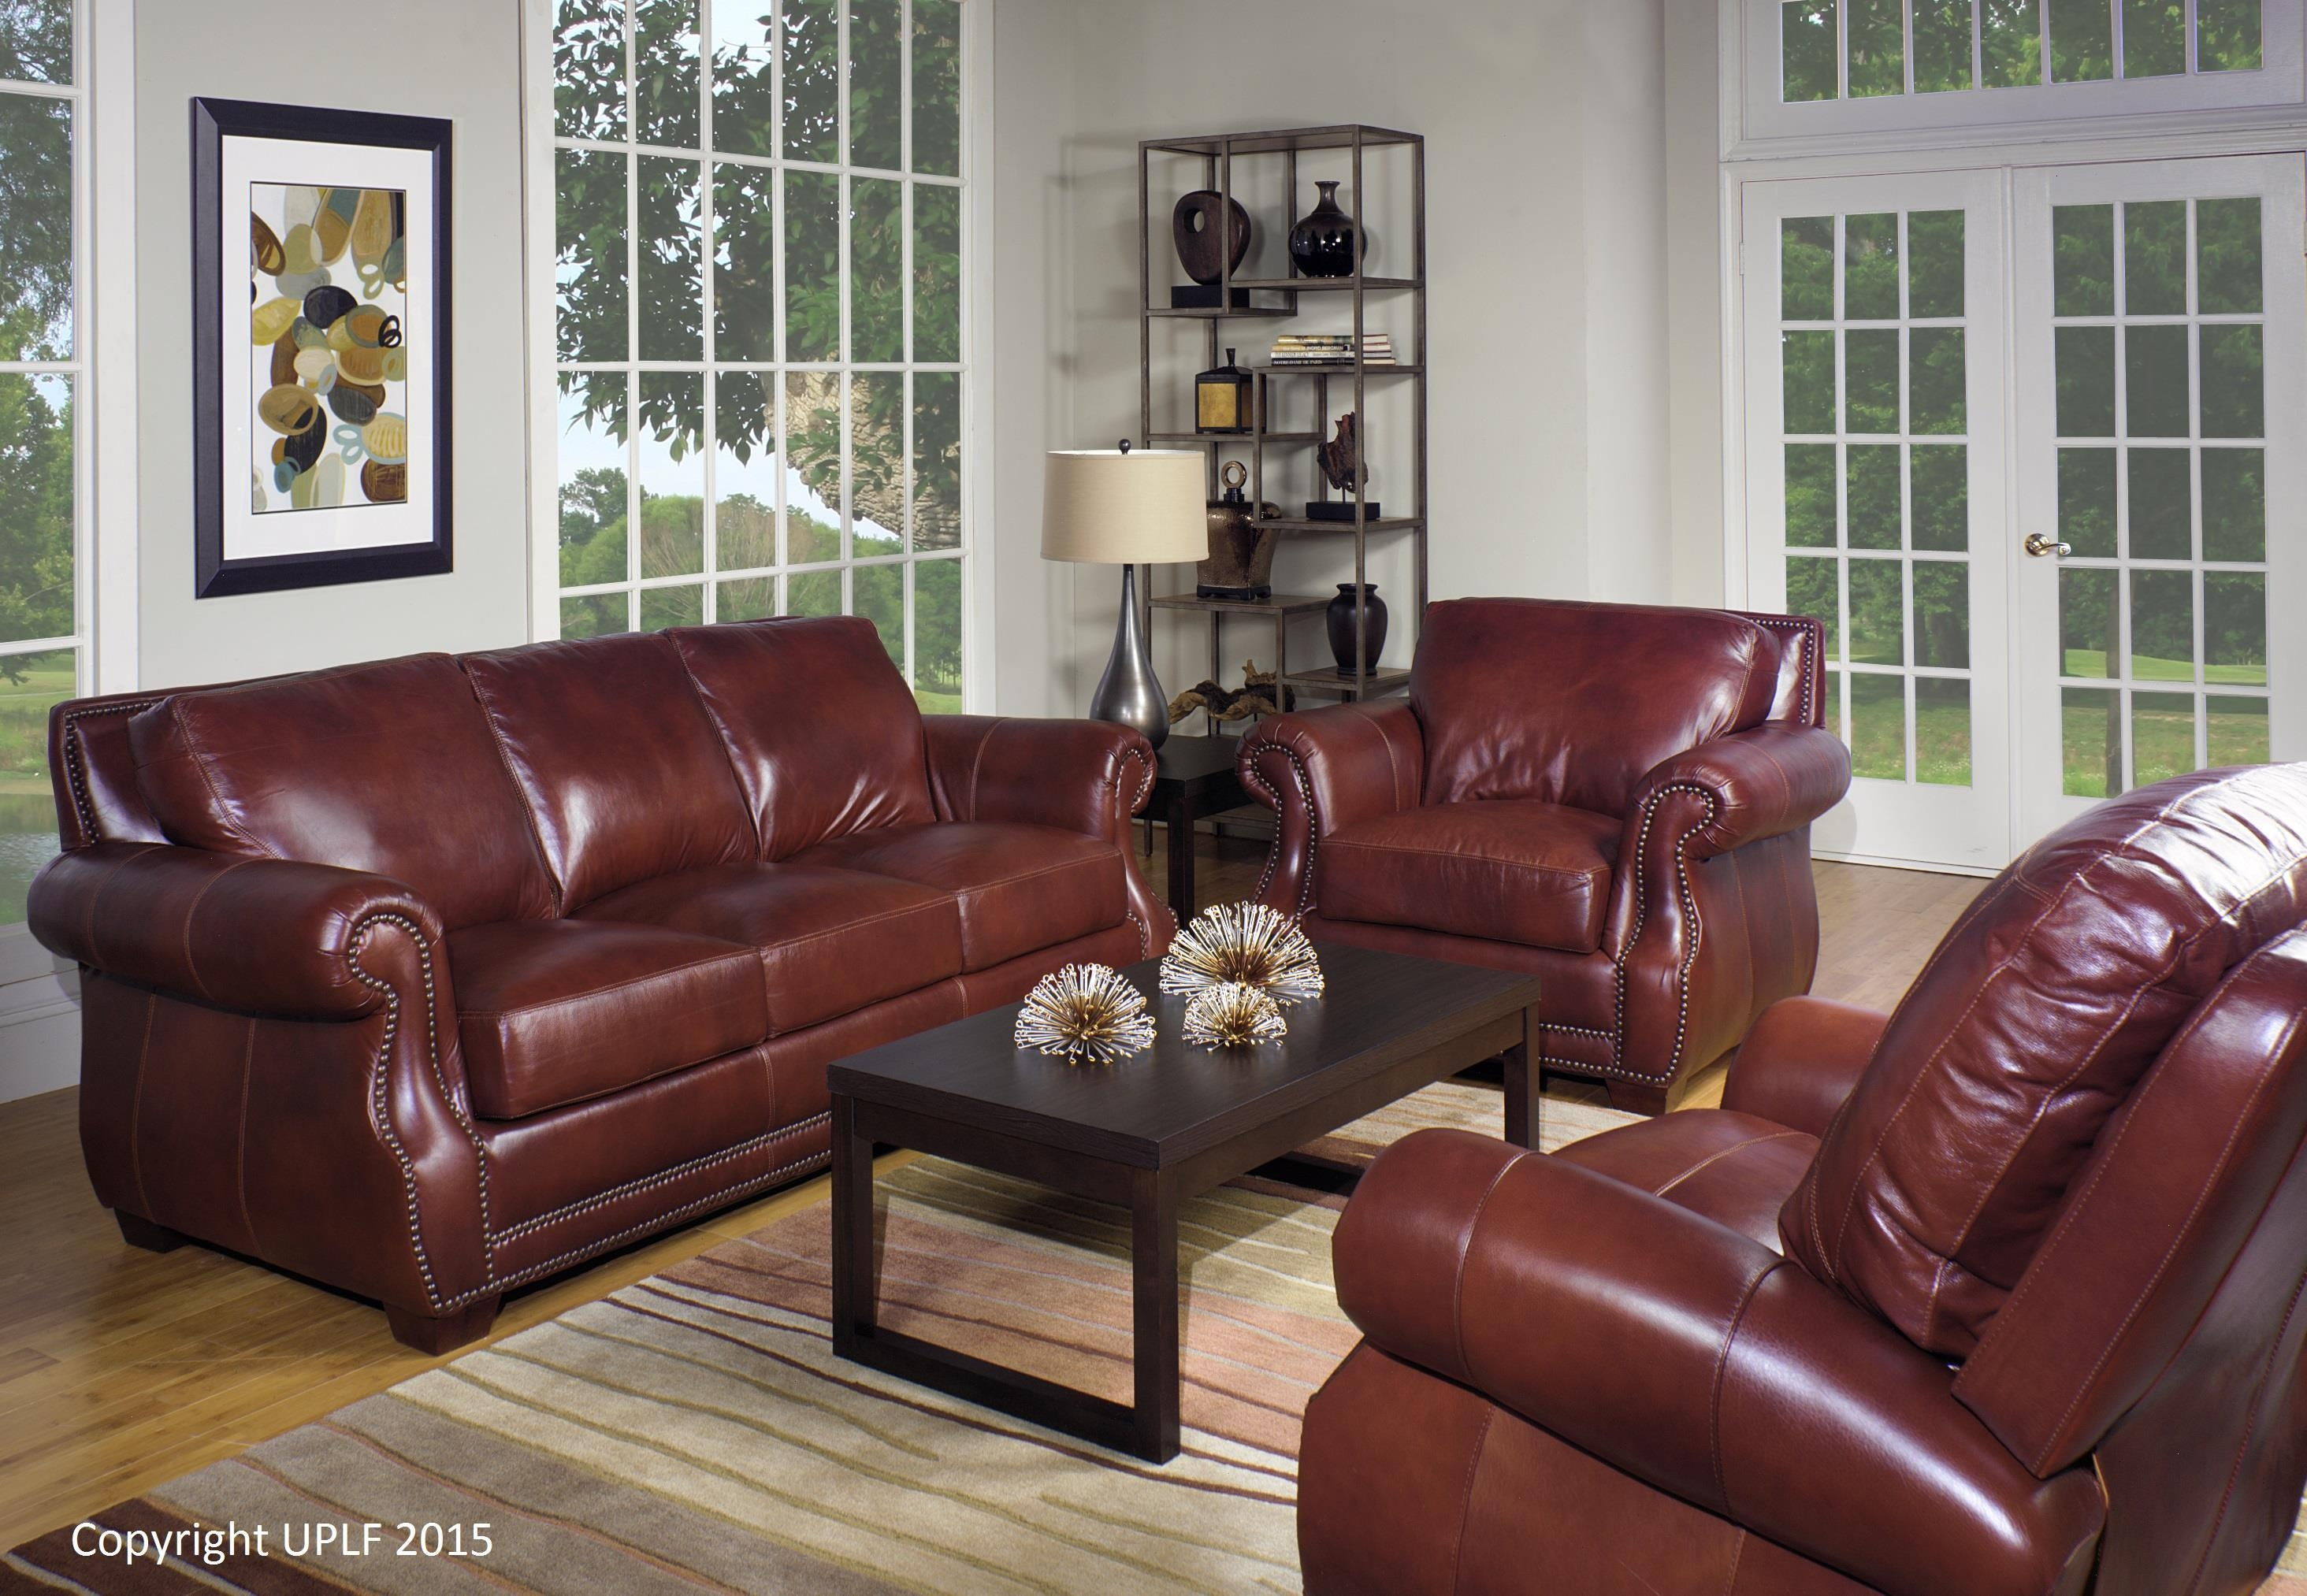 Traditional Top Grain Leather Sofa With Nailhead Trimusa For Brown Leather Sofas With Nailhead Trim (Image 20 of 20)